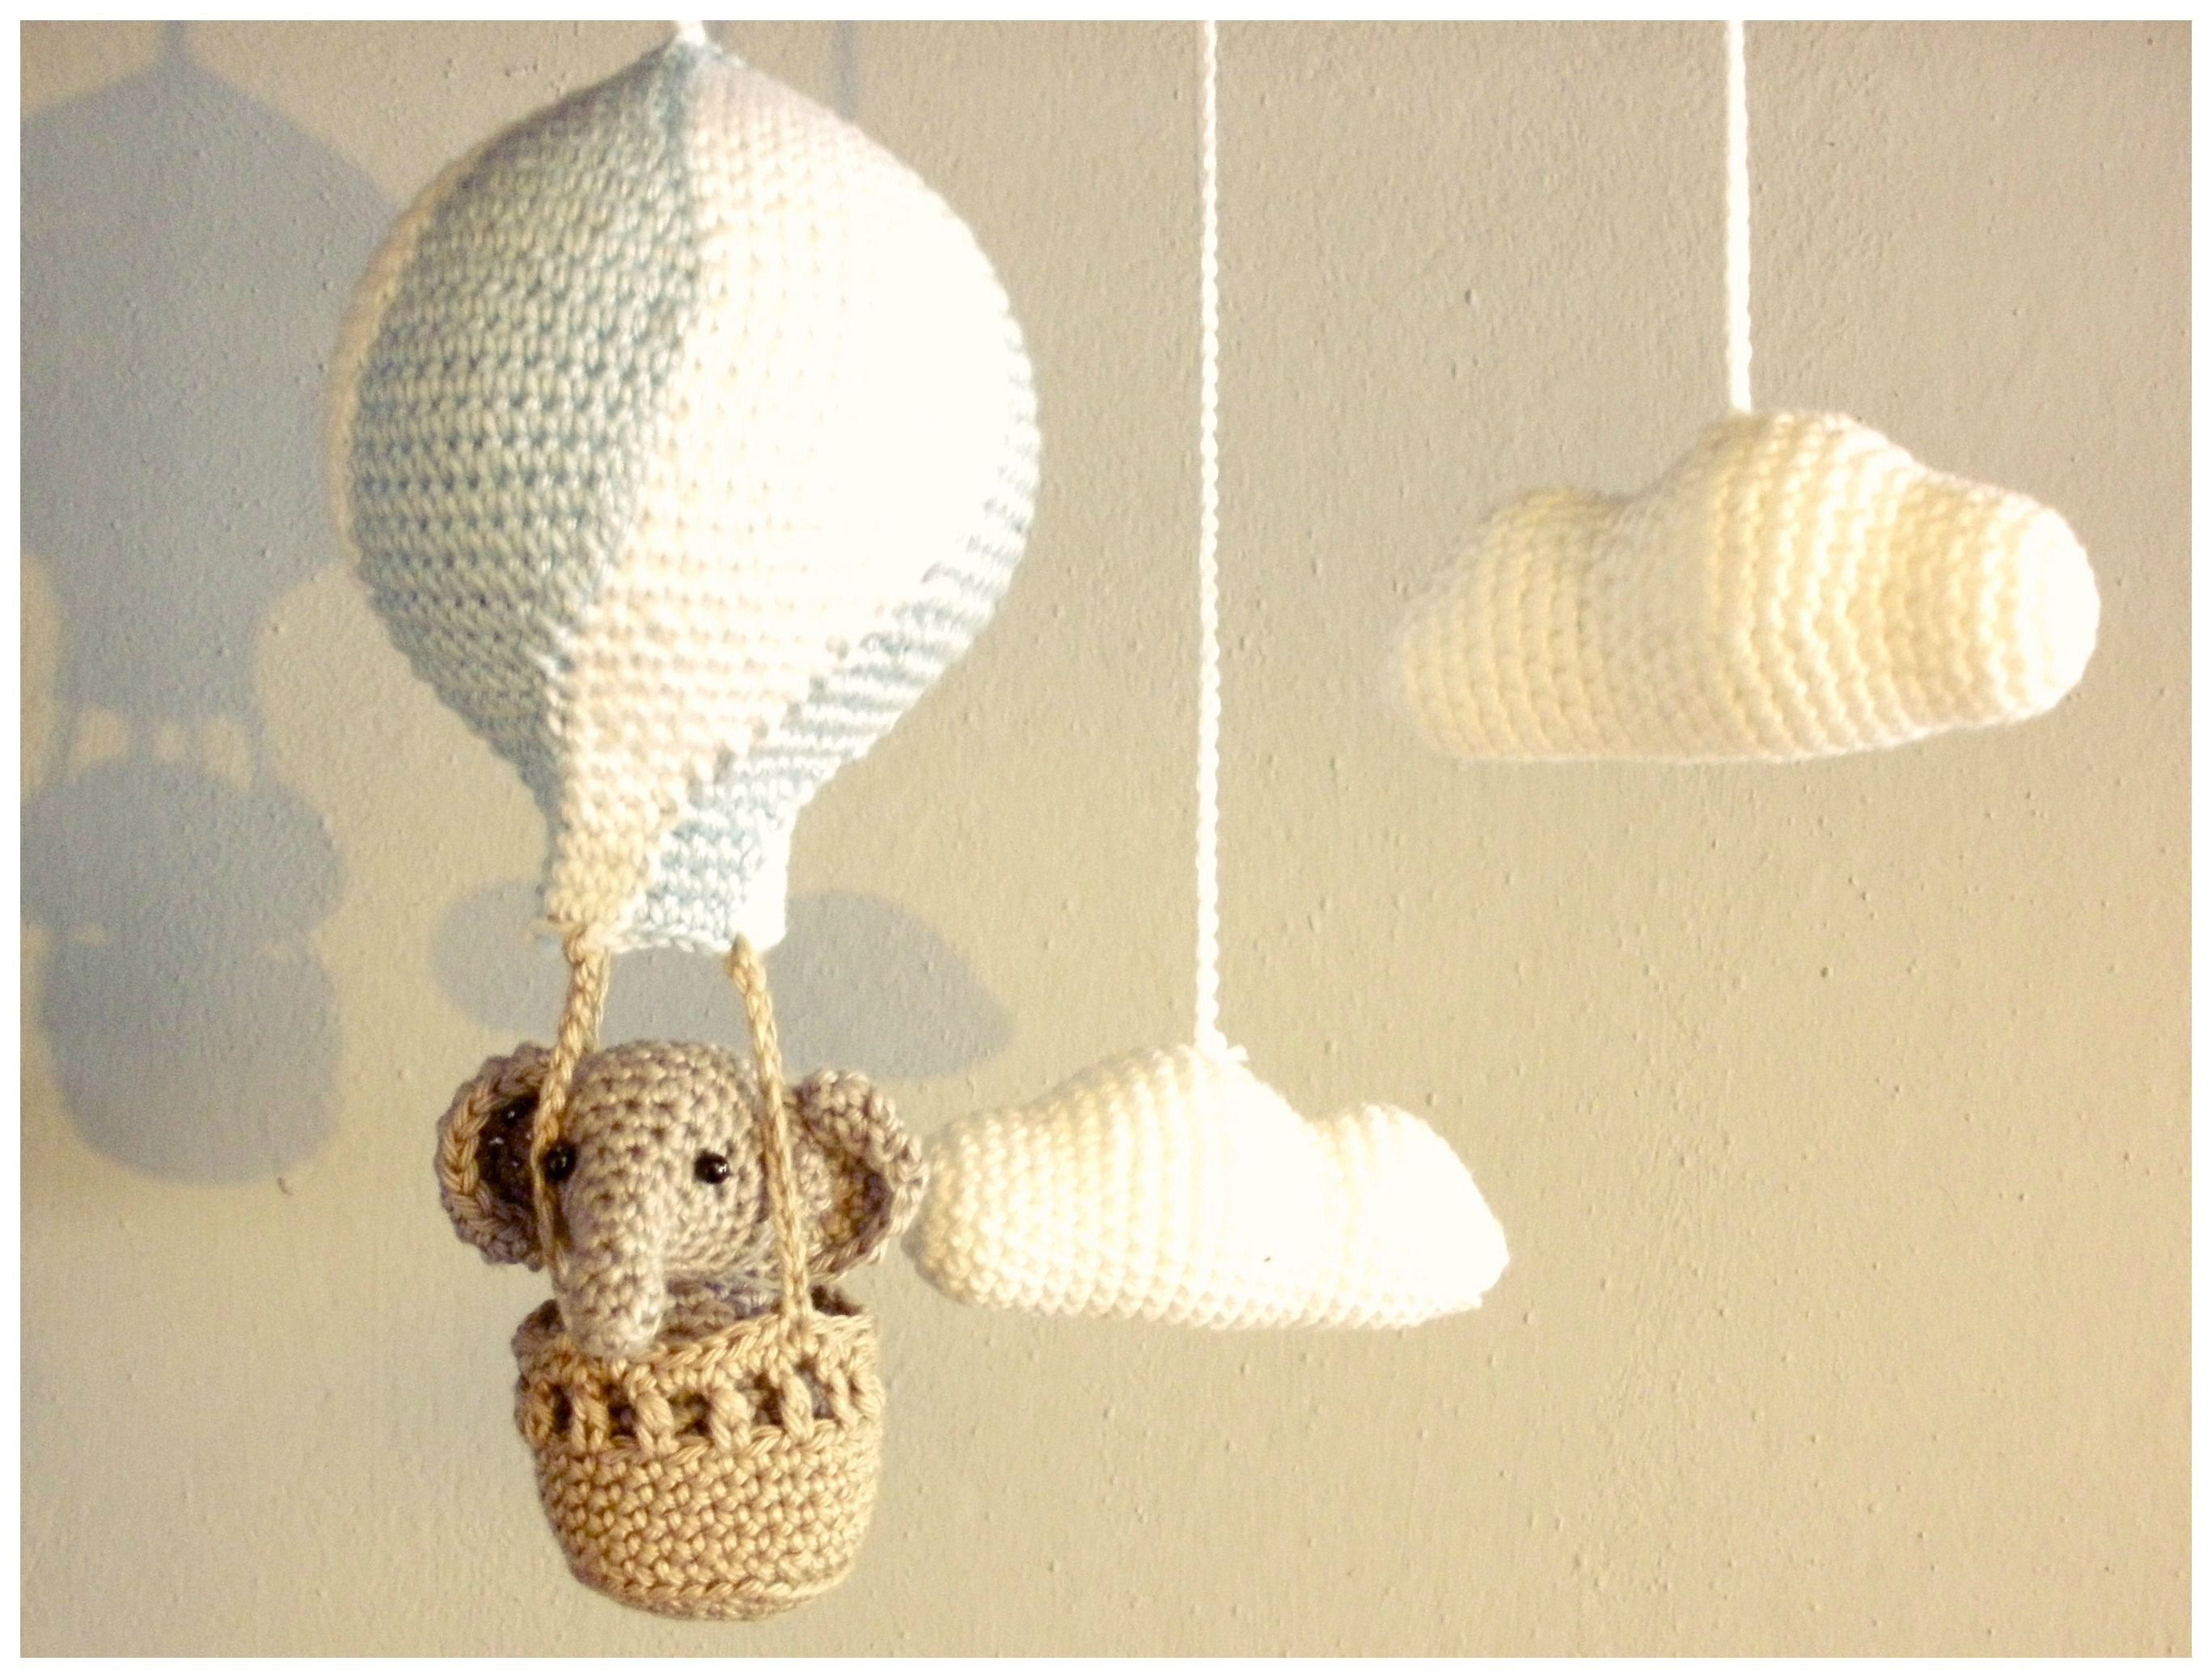 Hot air balloon crochet with elephant | Crochet Elephants ...